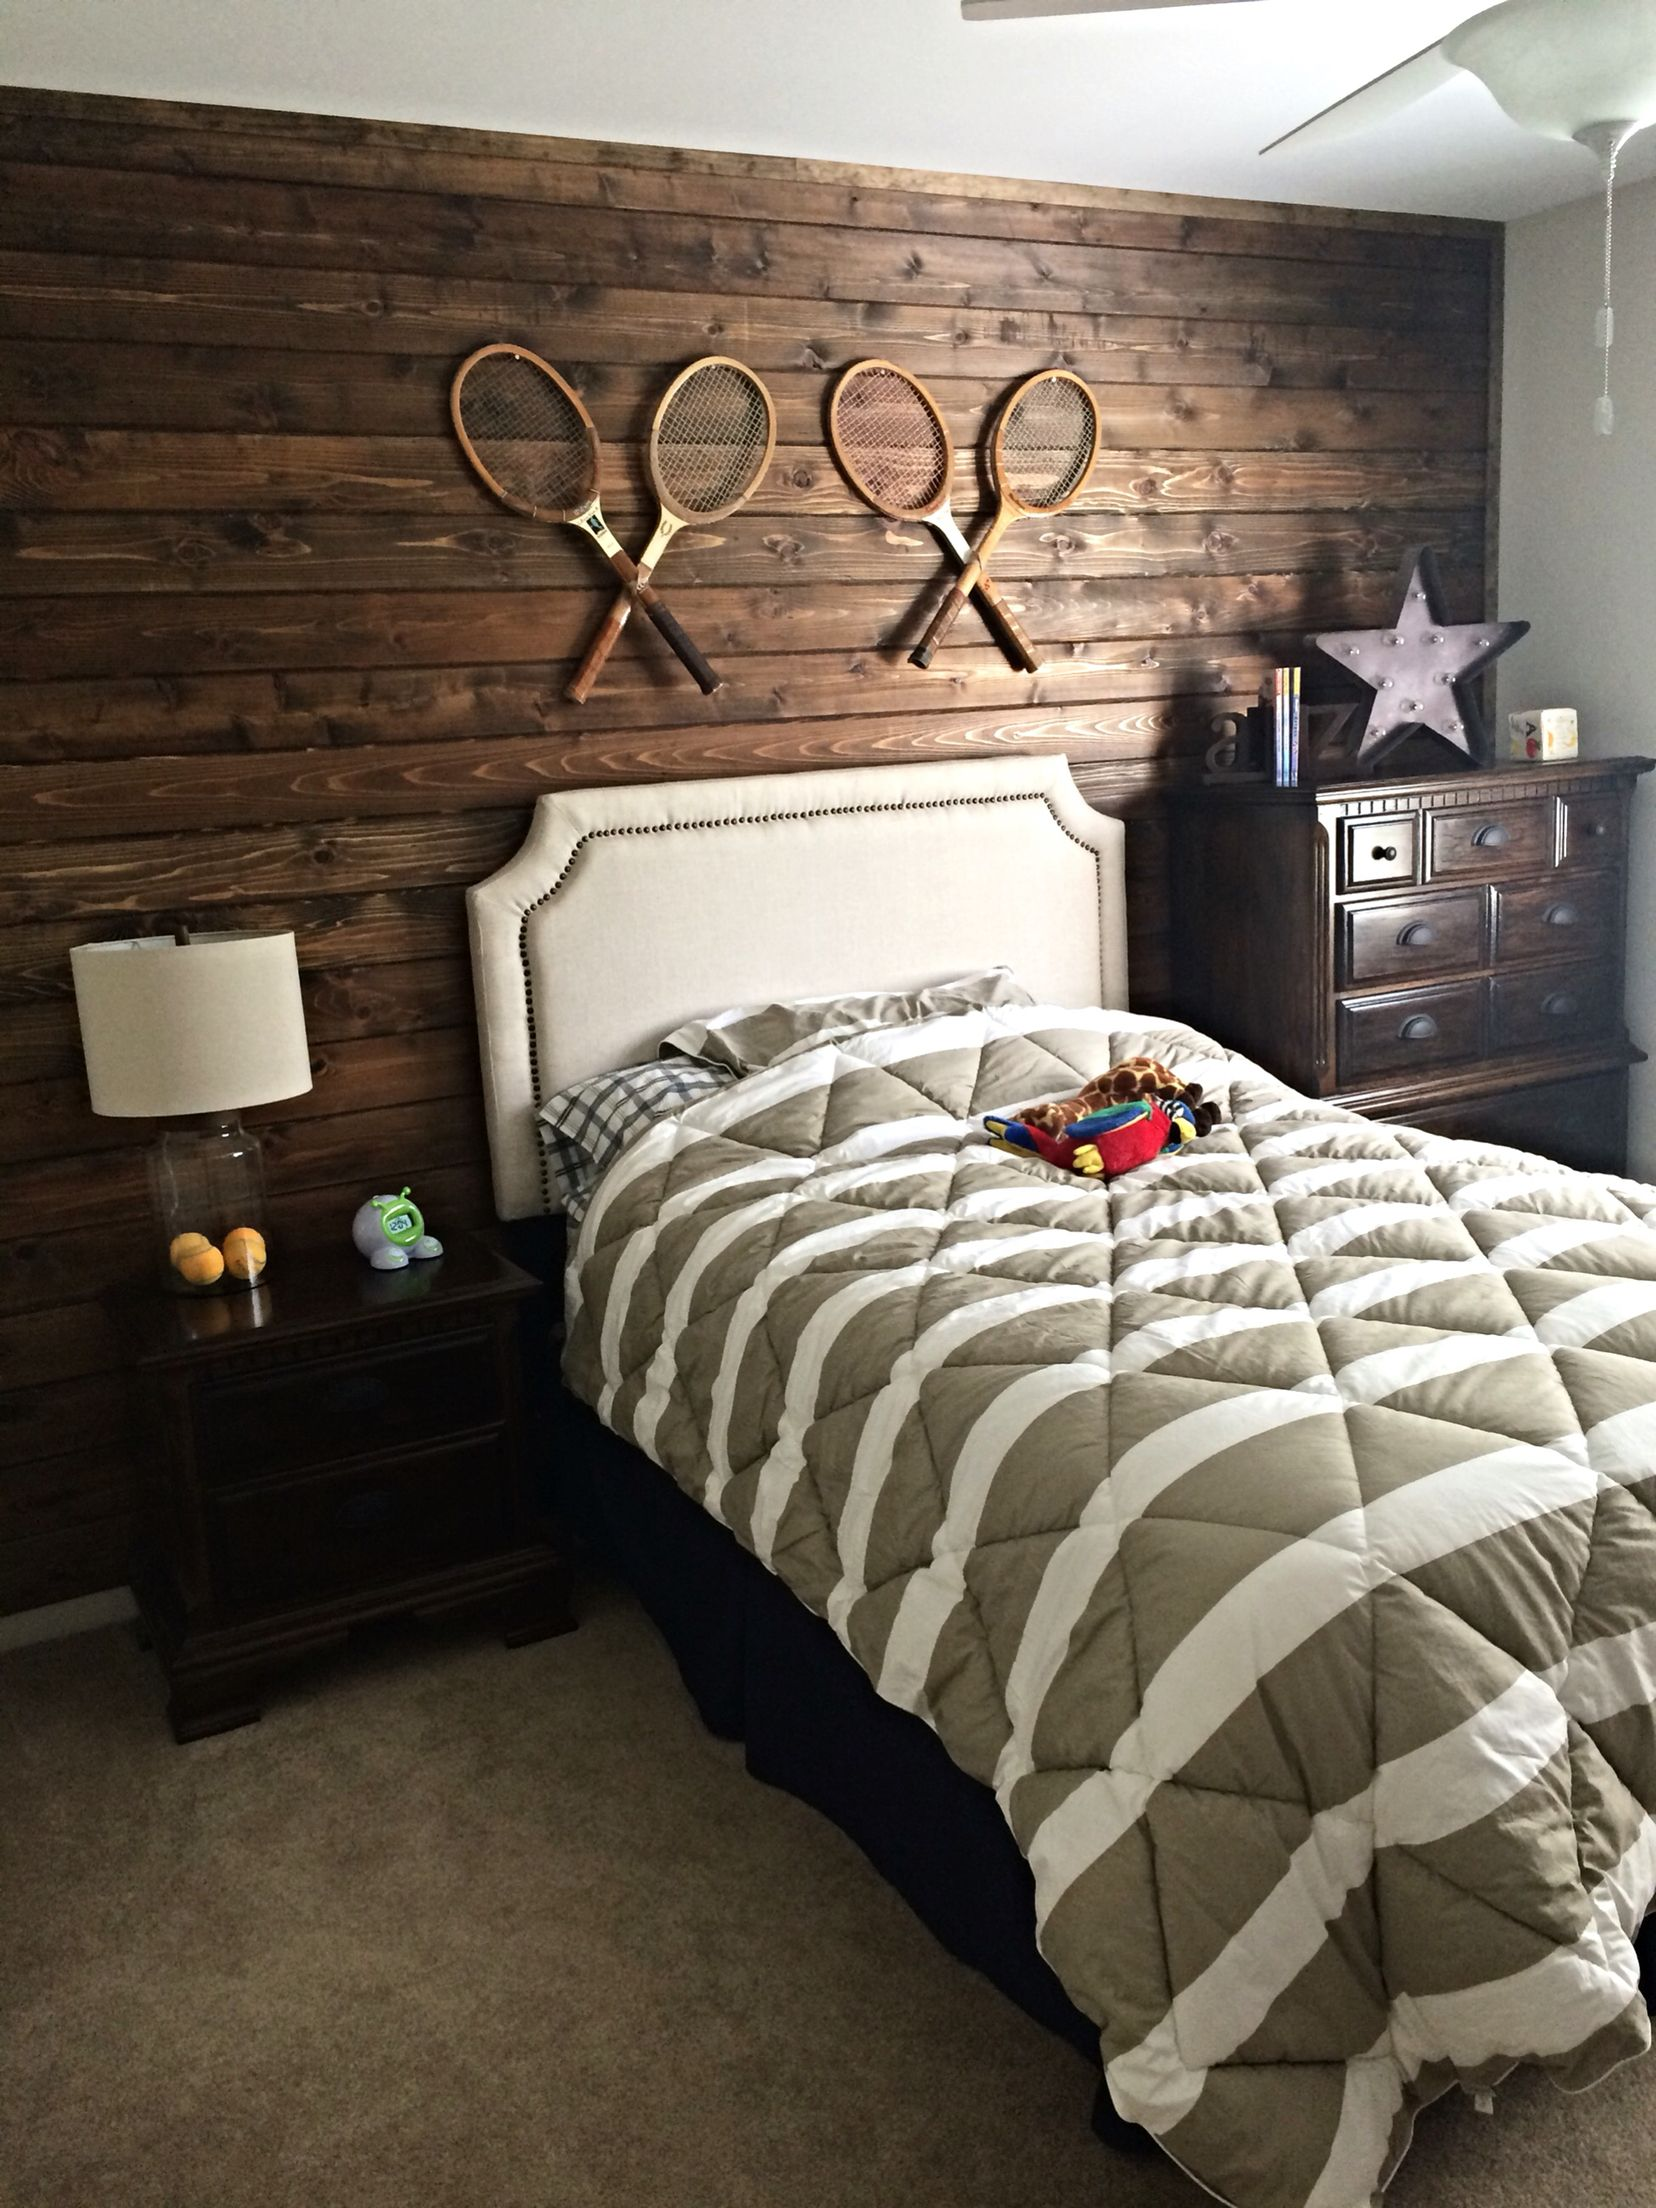 . Wood plank wall  antique tennis racquets    tennis themed room